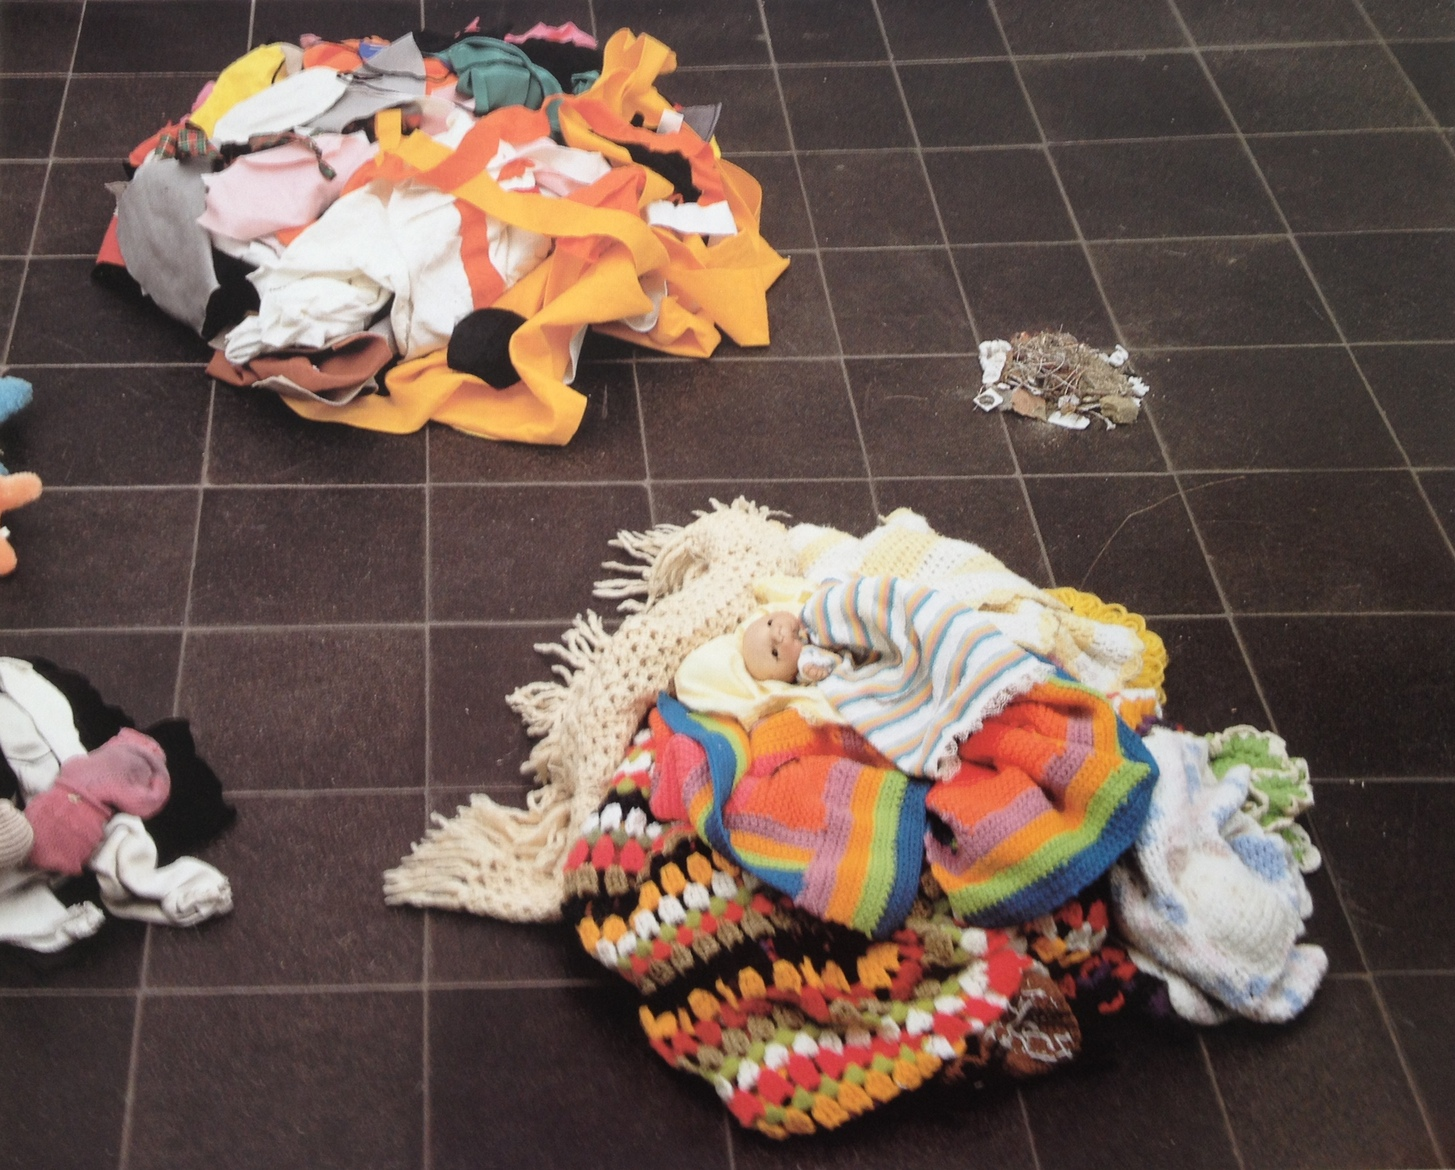 Mike Kelley: Five Piles, 1993.